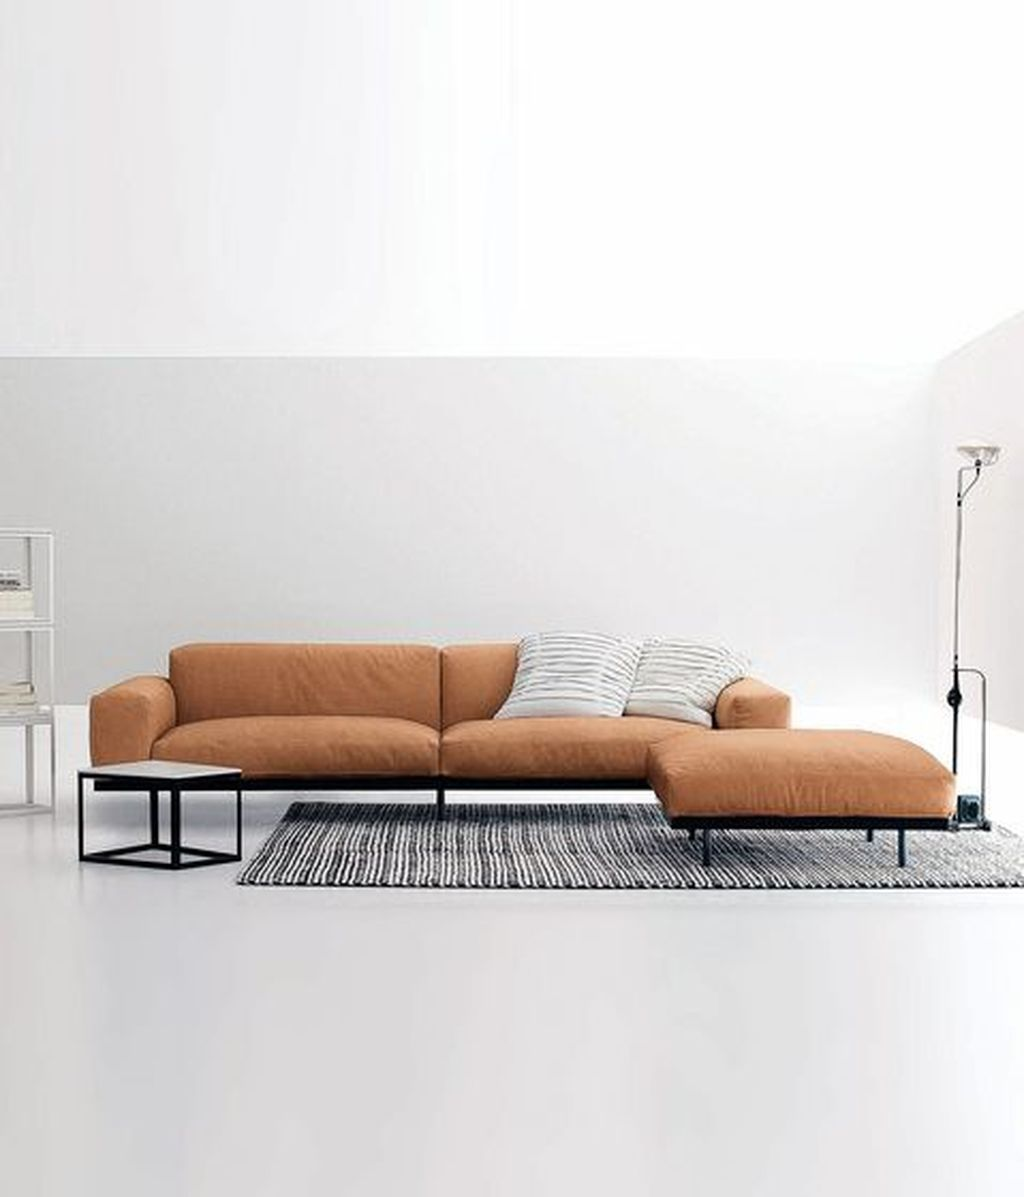 50 Cozy Ultra Modern Sofa Designs Ideas is part of Modern sofa designs - Years go by, times change and people grow  Along the way, they adopt new attitudes, experiences, tastes and opinions  And […]